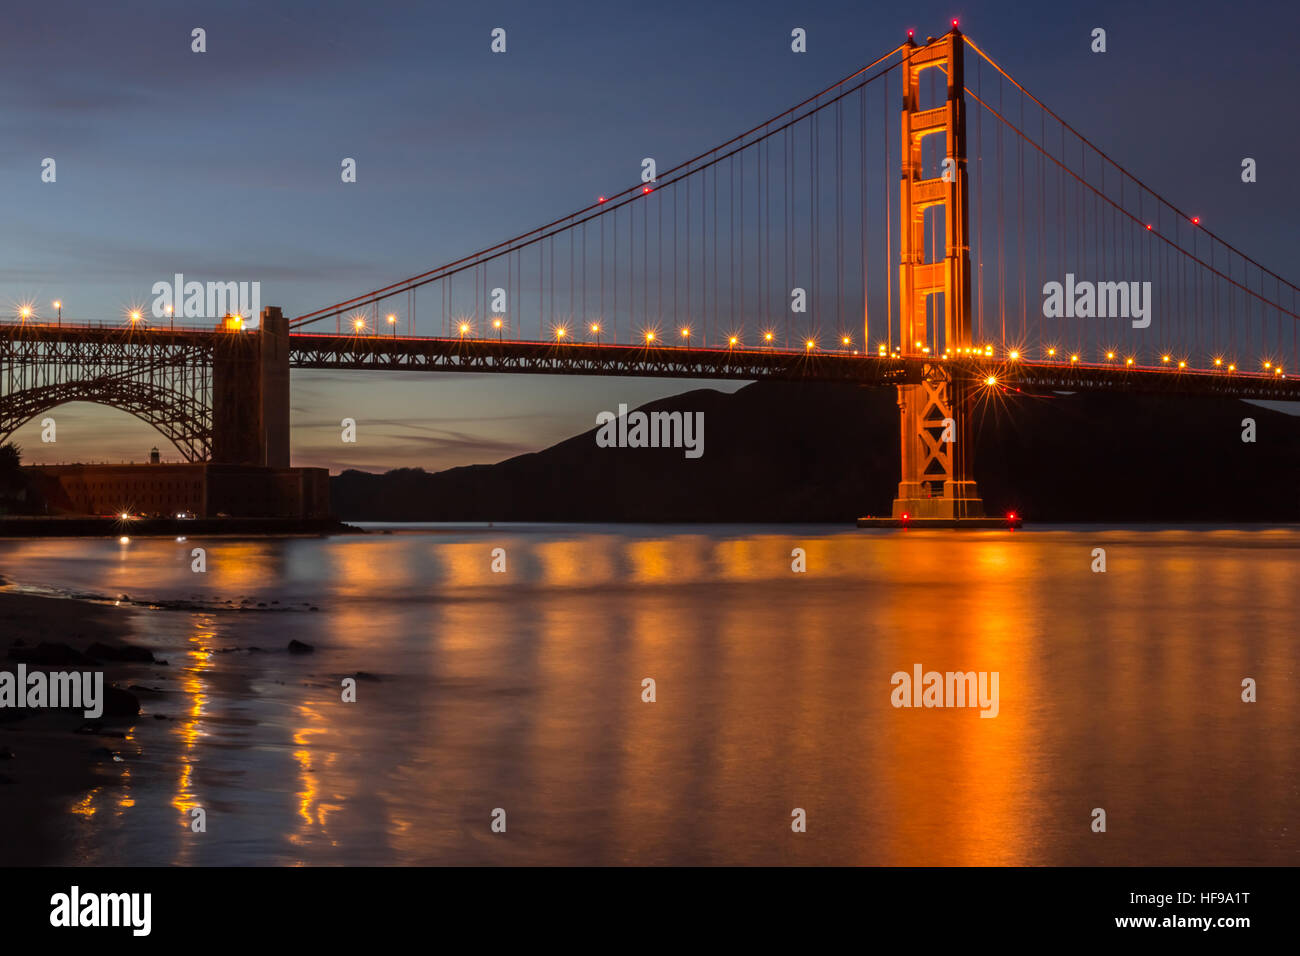 Golden Gate Bridge e i riflessi dell'acqua. Fort Point, San Francisco, California, Stati Uniti d'America Immagini Stock